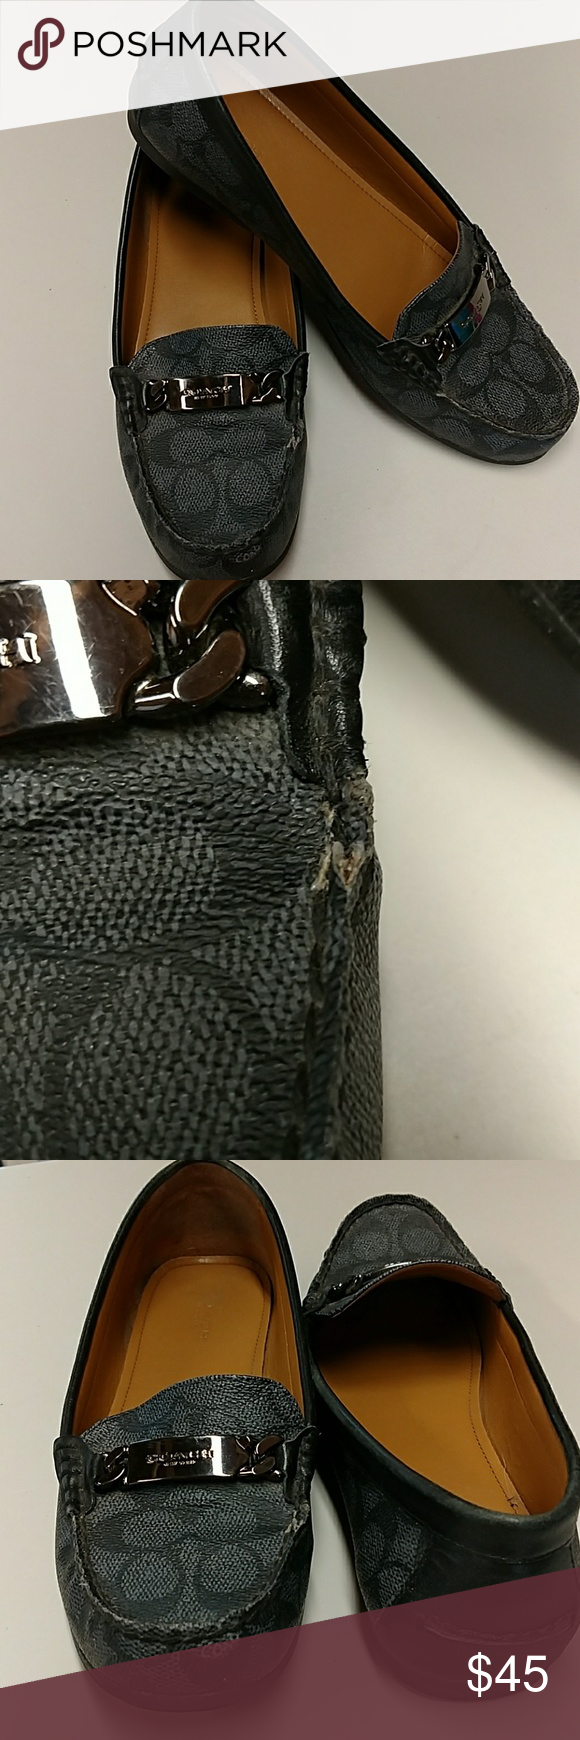 Coach New York loafers Some wear and tear as pictured but still have a lot of life left still nice looking. Coach Shoes